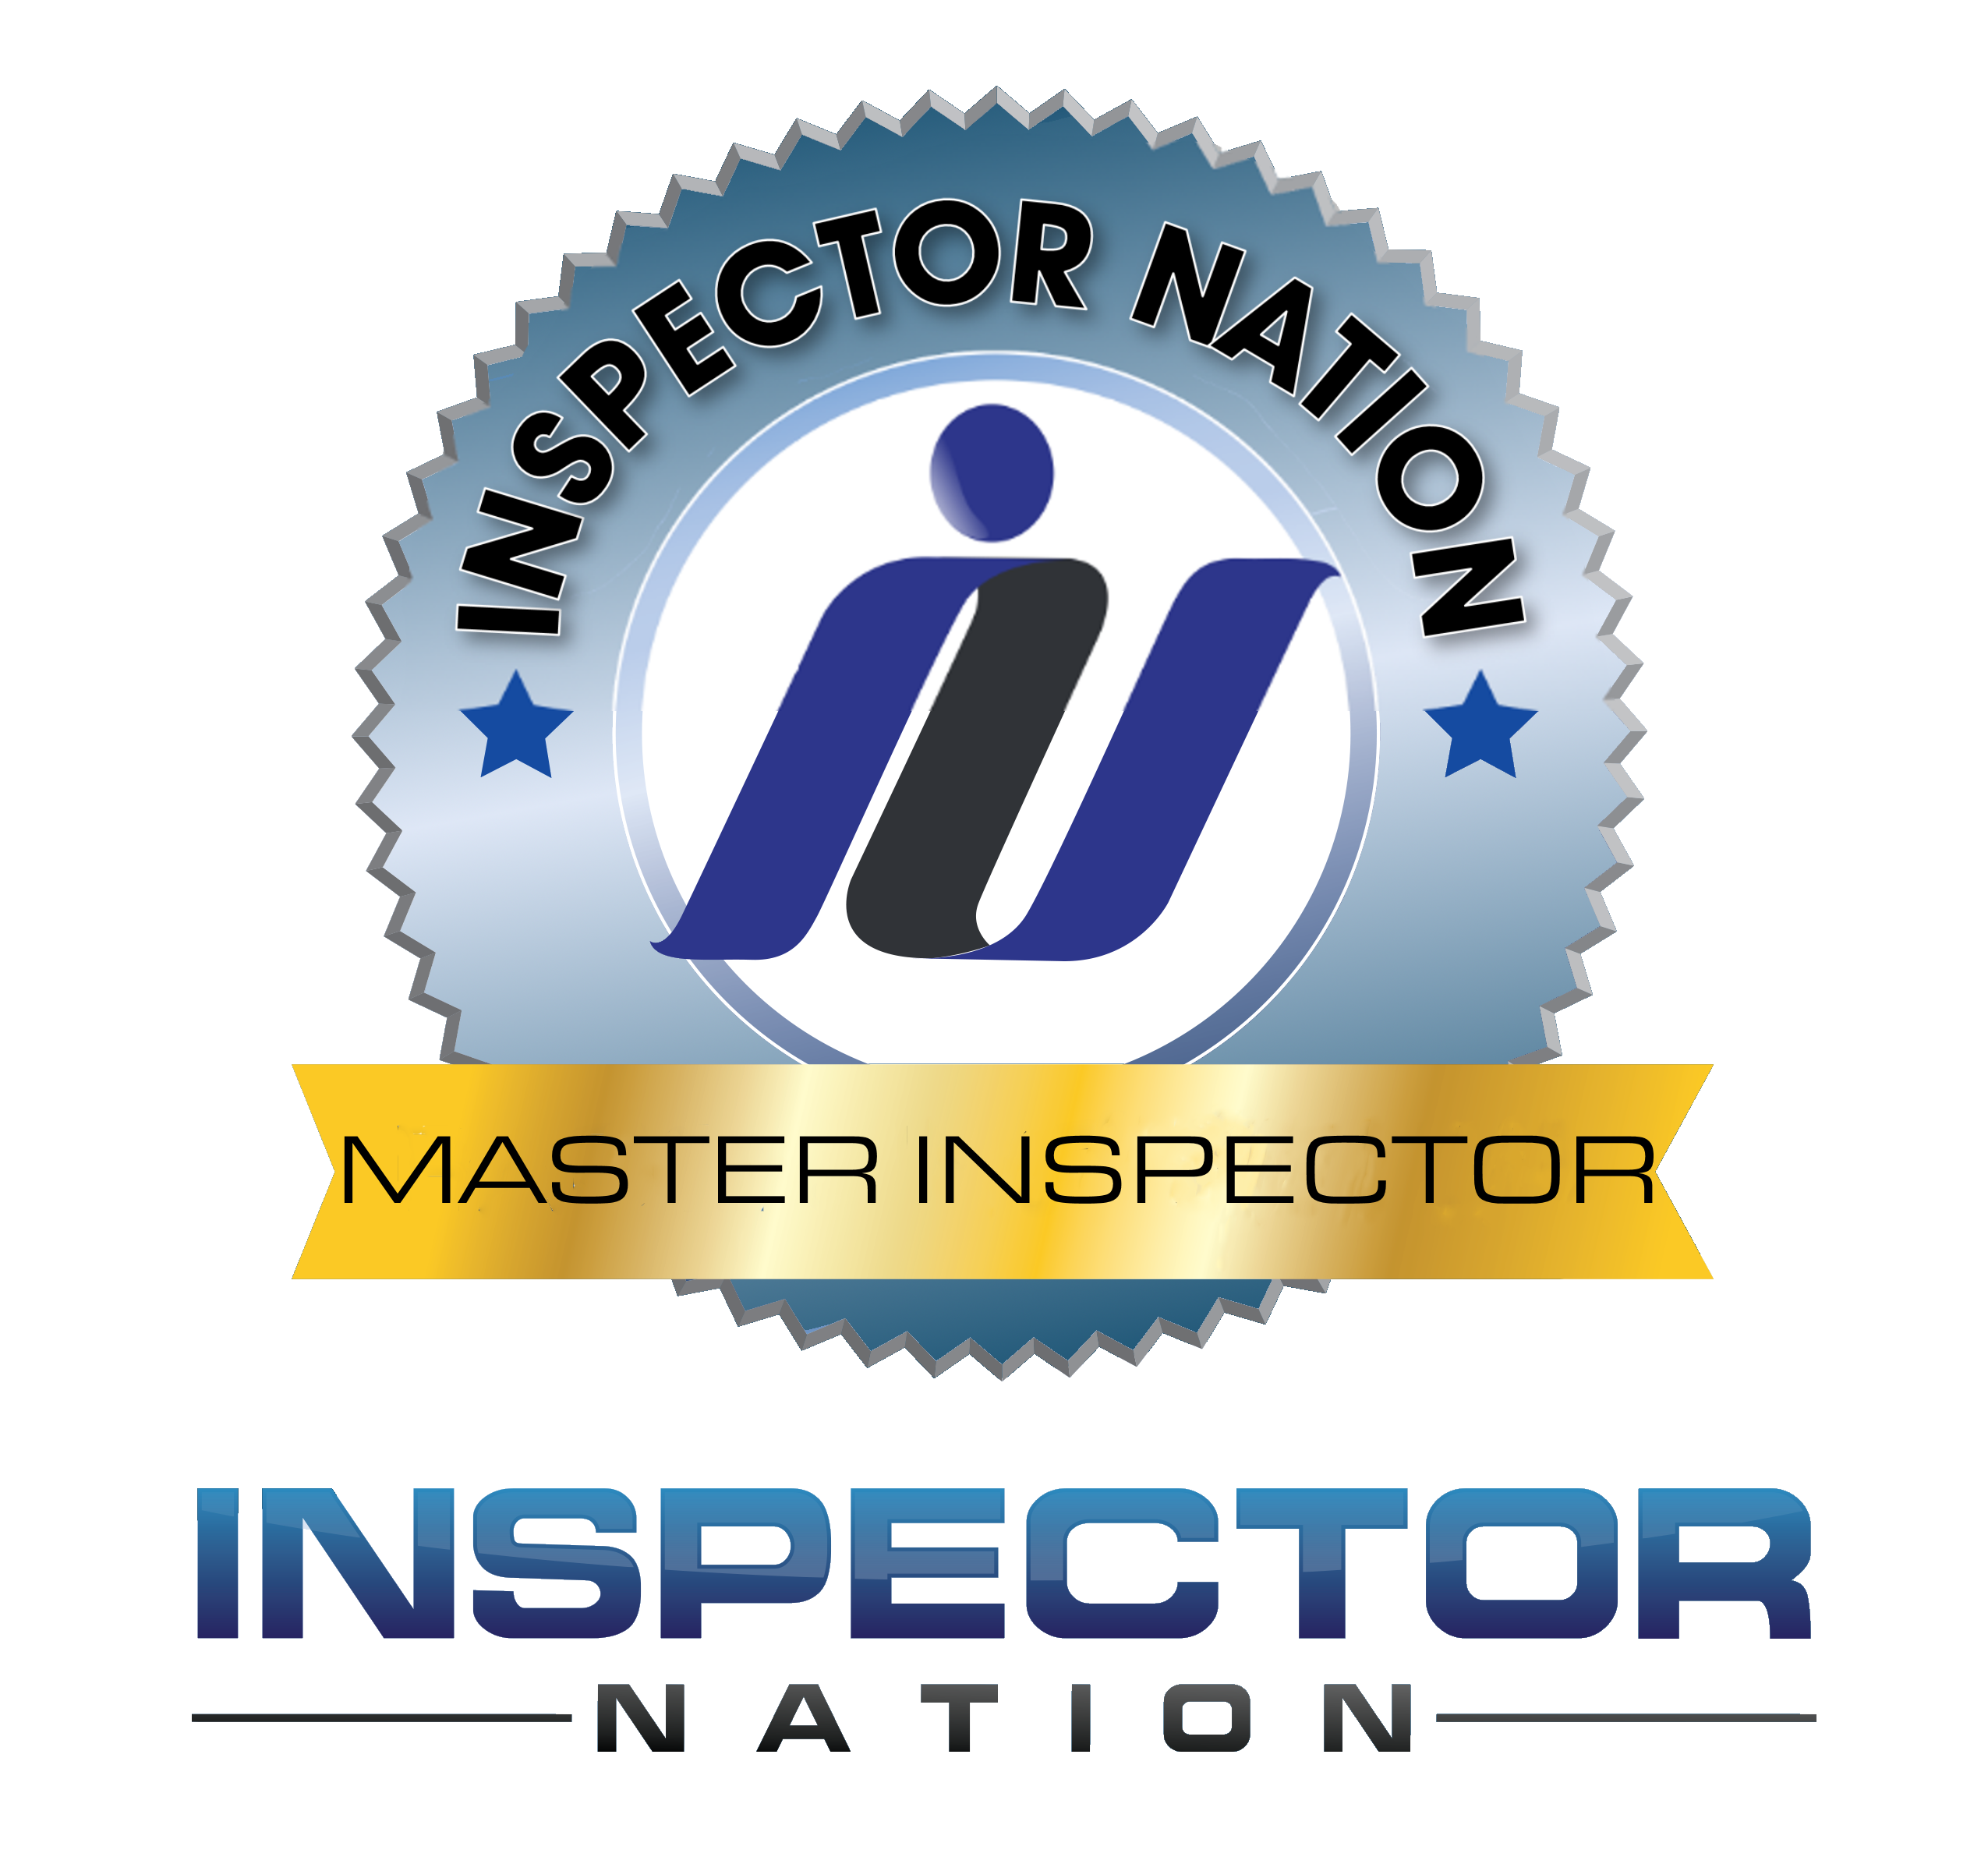 inspector nation certified home inspector emblem icon